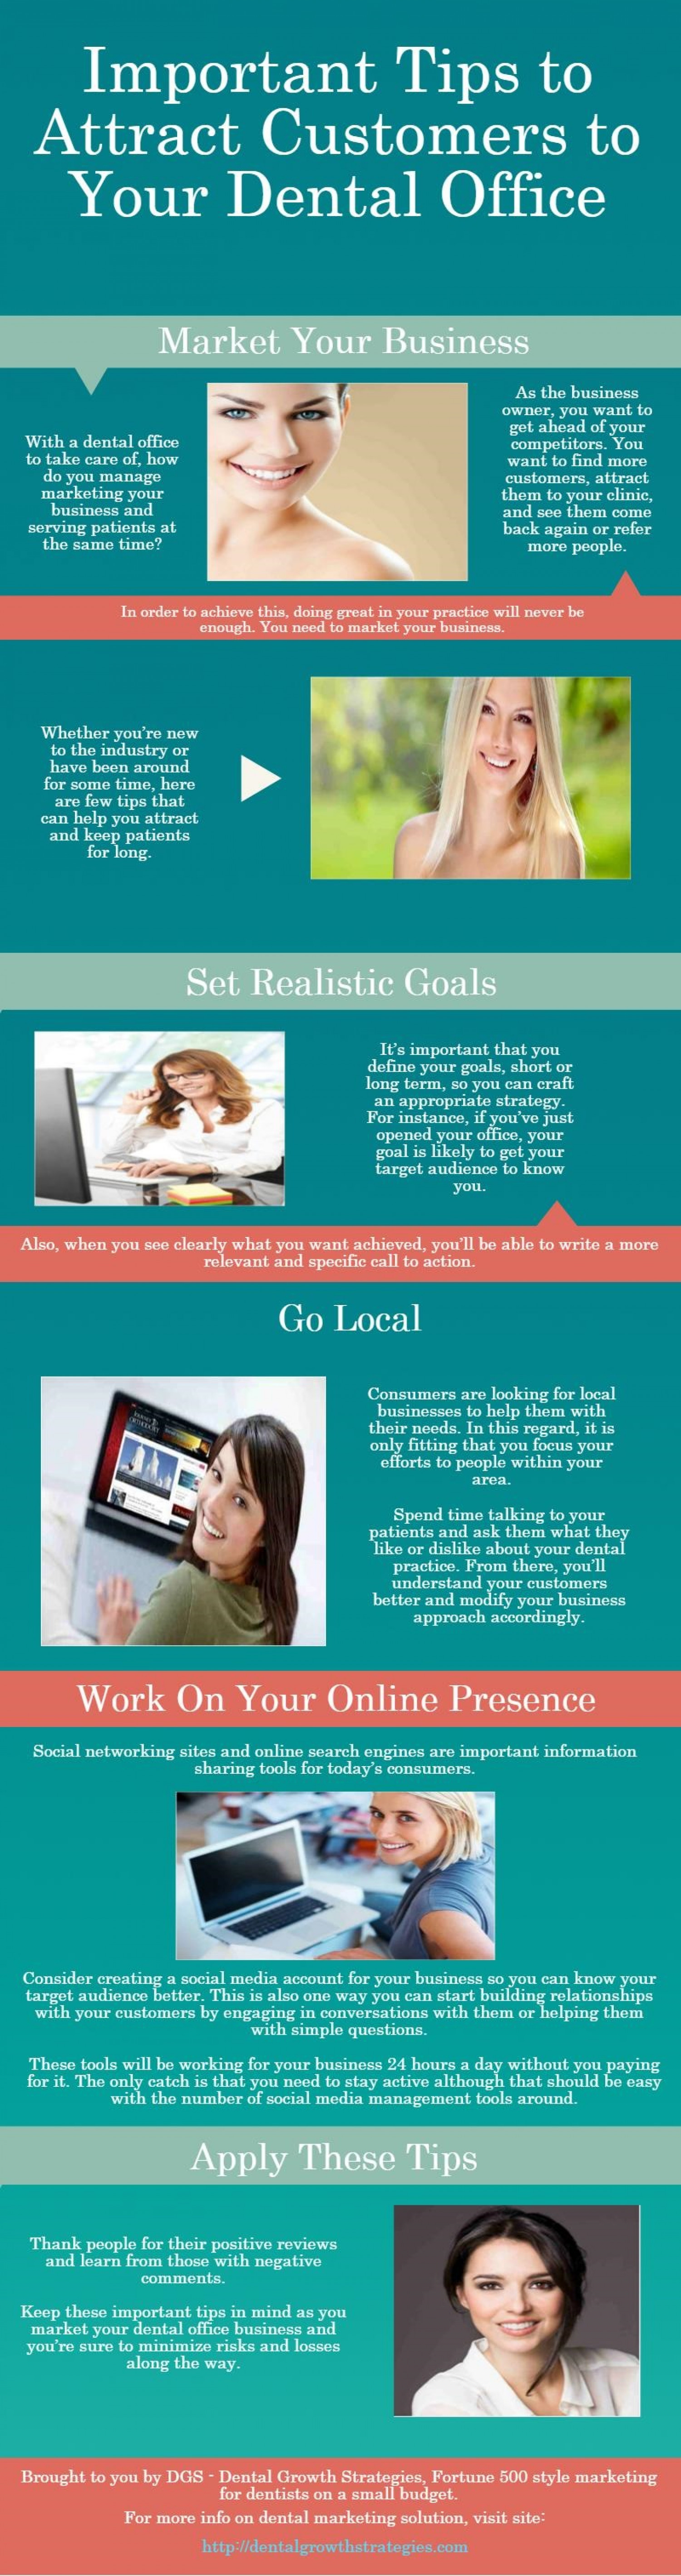 Important Tips to Attract Customers to Your Dental Office Infographic